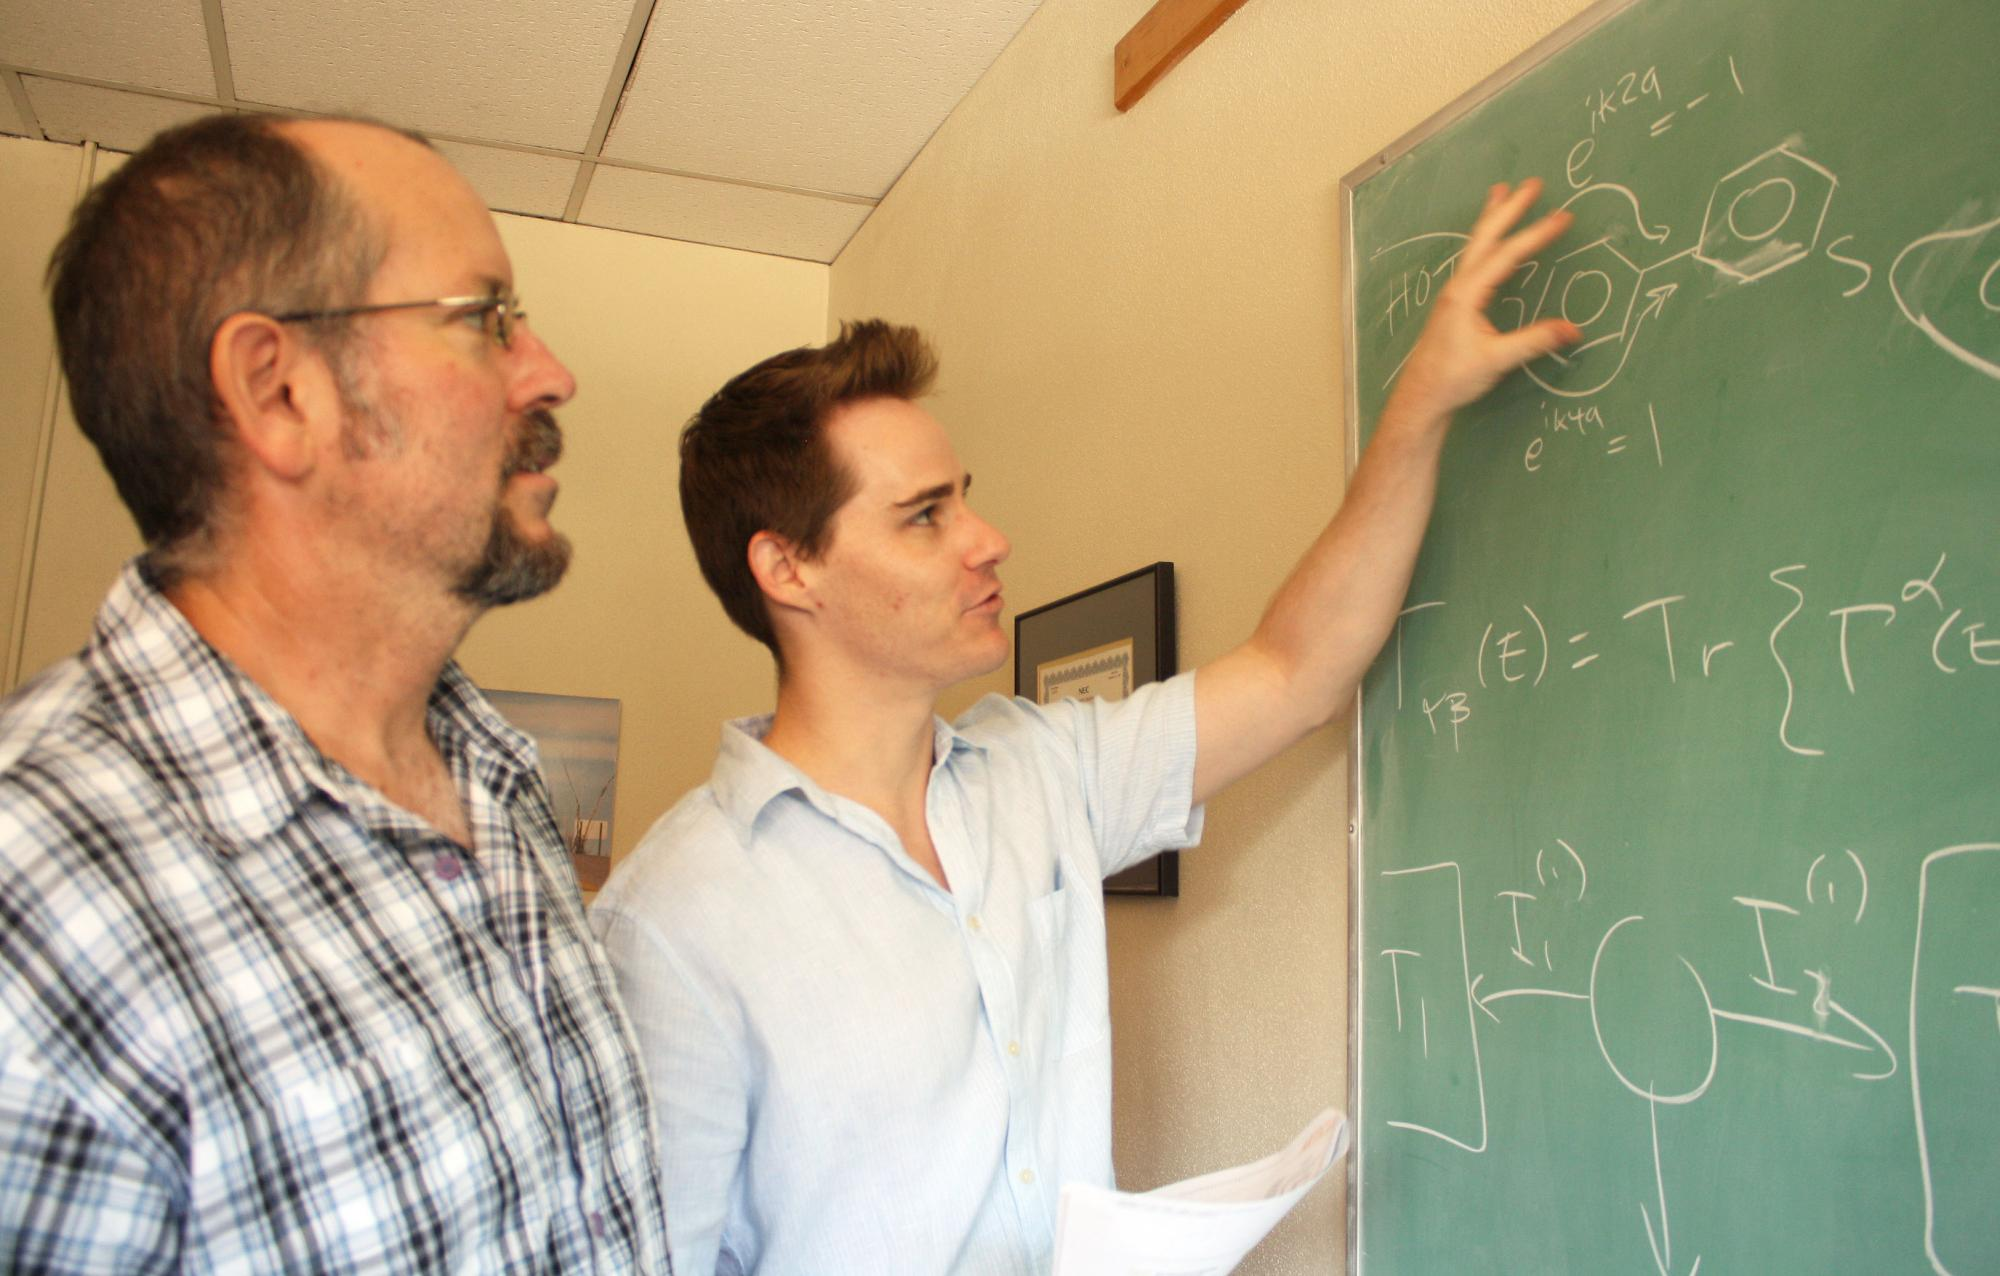 Charles Stafford  and Justin Bergfield discuss the flow of electron waves around a benzene ring - the key to the quantum effects allowing for the conversion of heat into electricity.